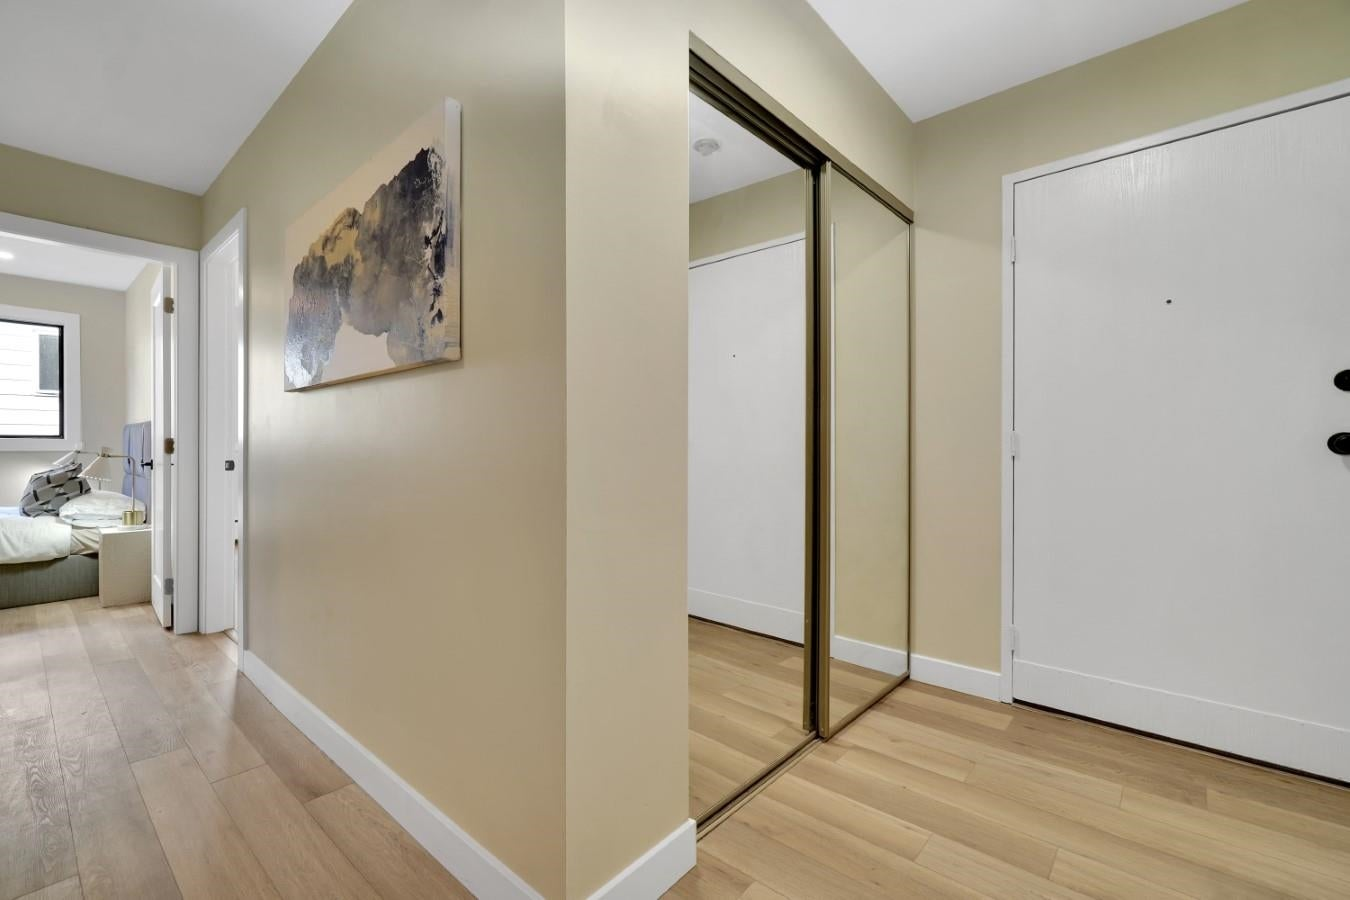 206 330 W 2ND STREET - Lower Lonsdale Apartment/Condo for sale, 2 Bedrooms (R2604160) - #13